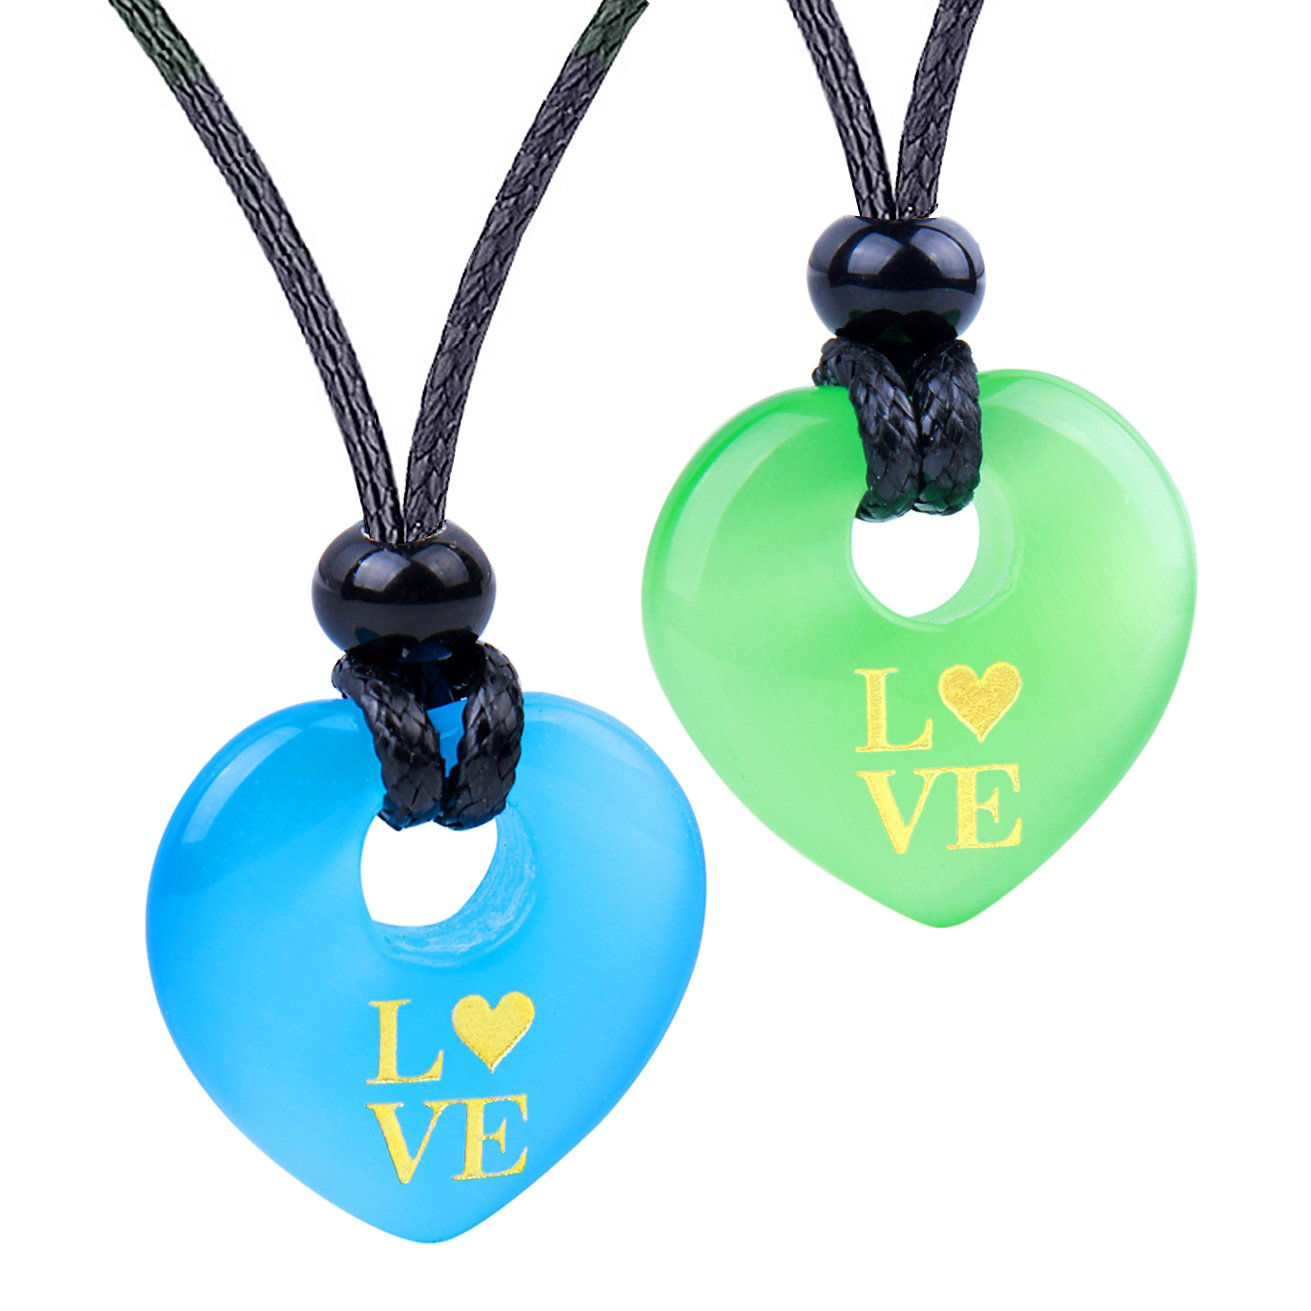 Inspirational Heart Donut Amulets Love Powers Couples BFF Green Blue Simulated Cats Eye Necklaces